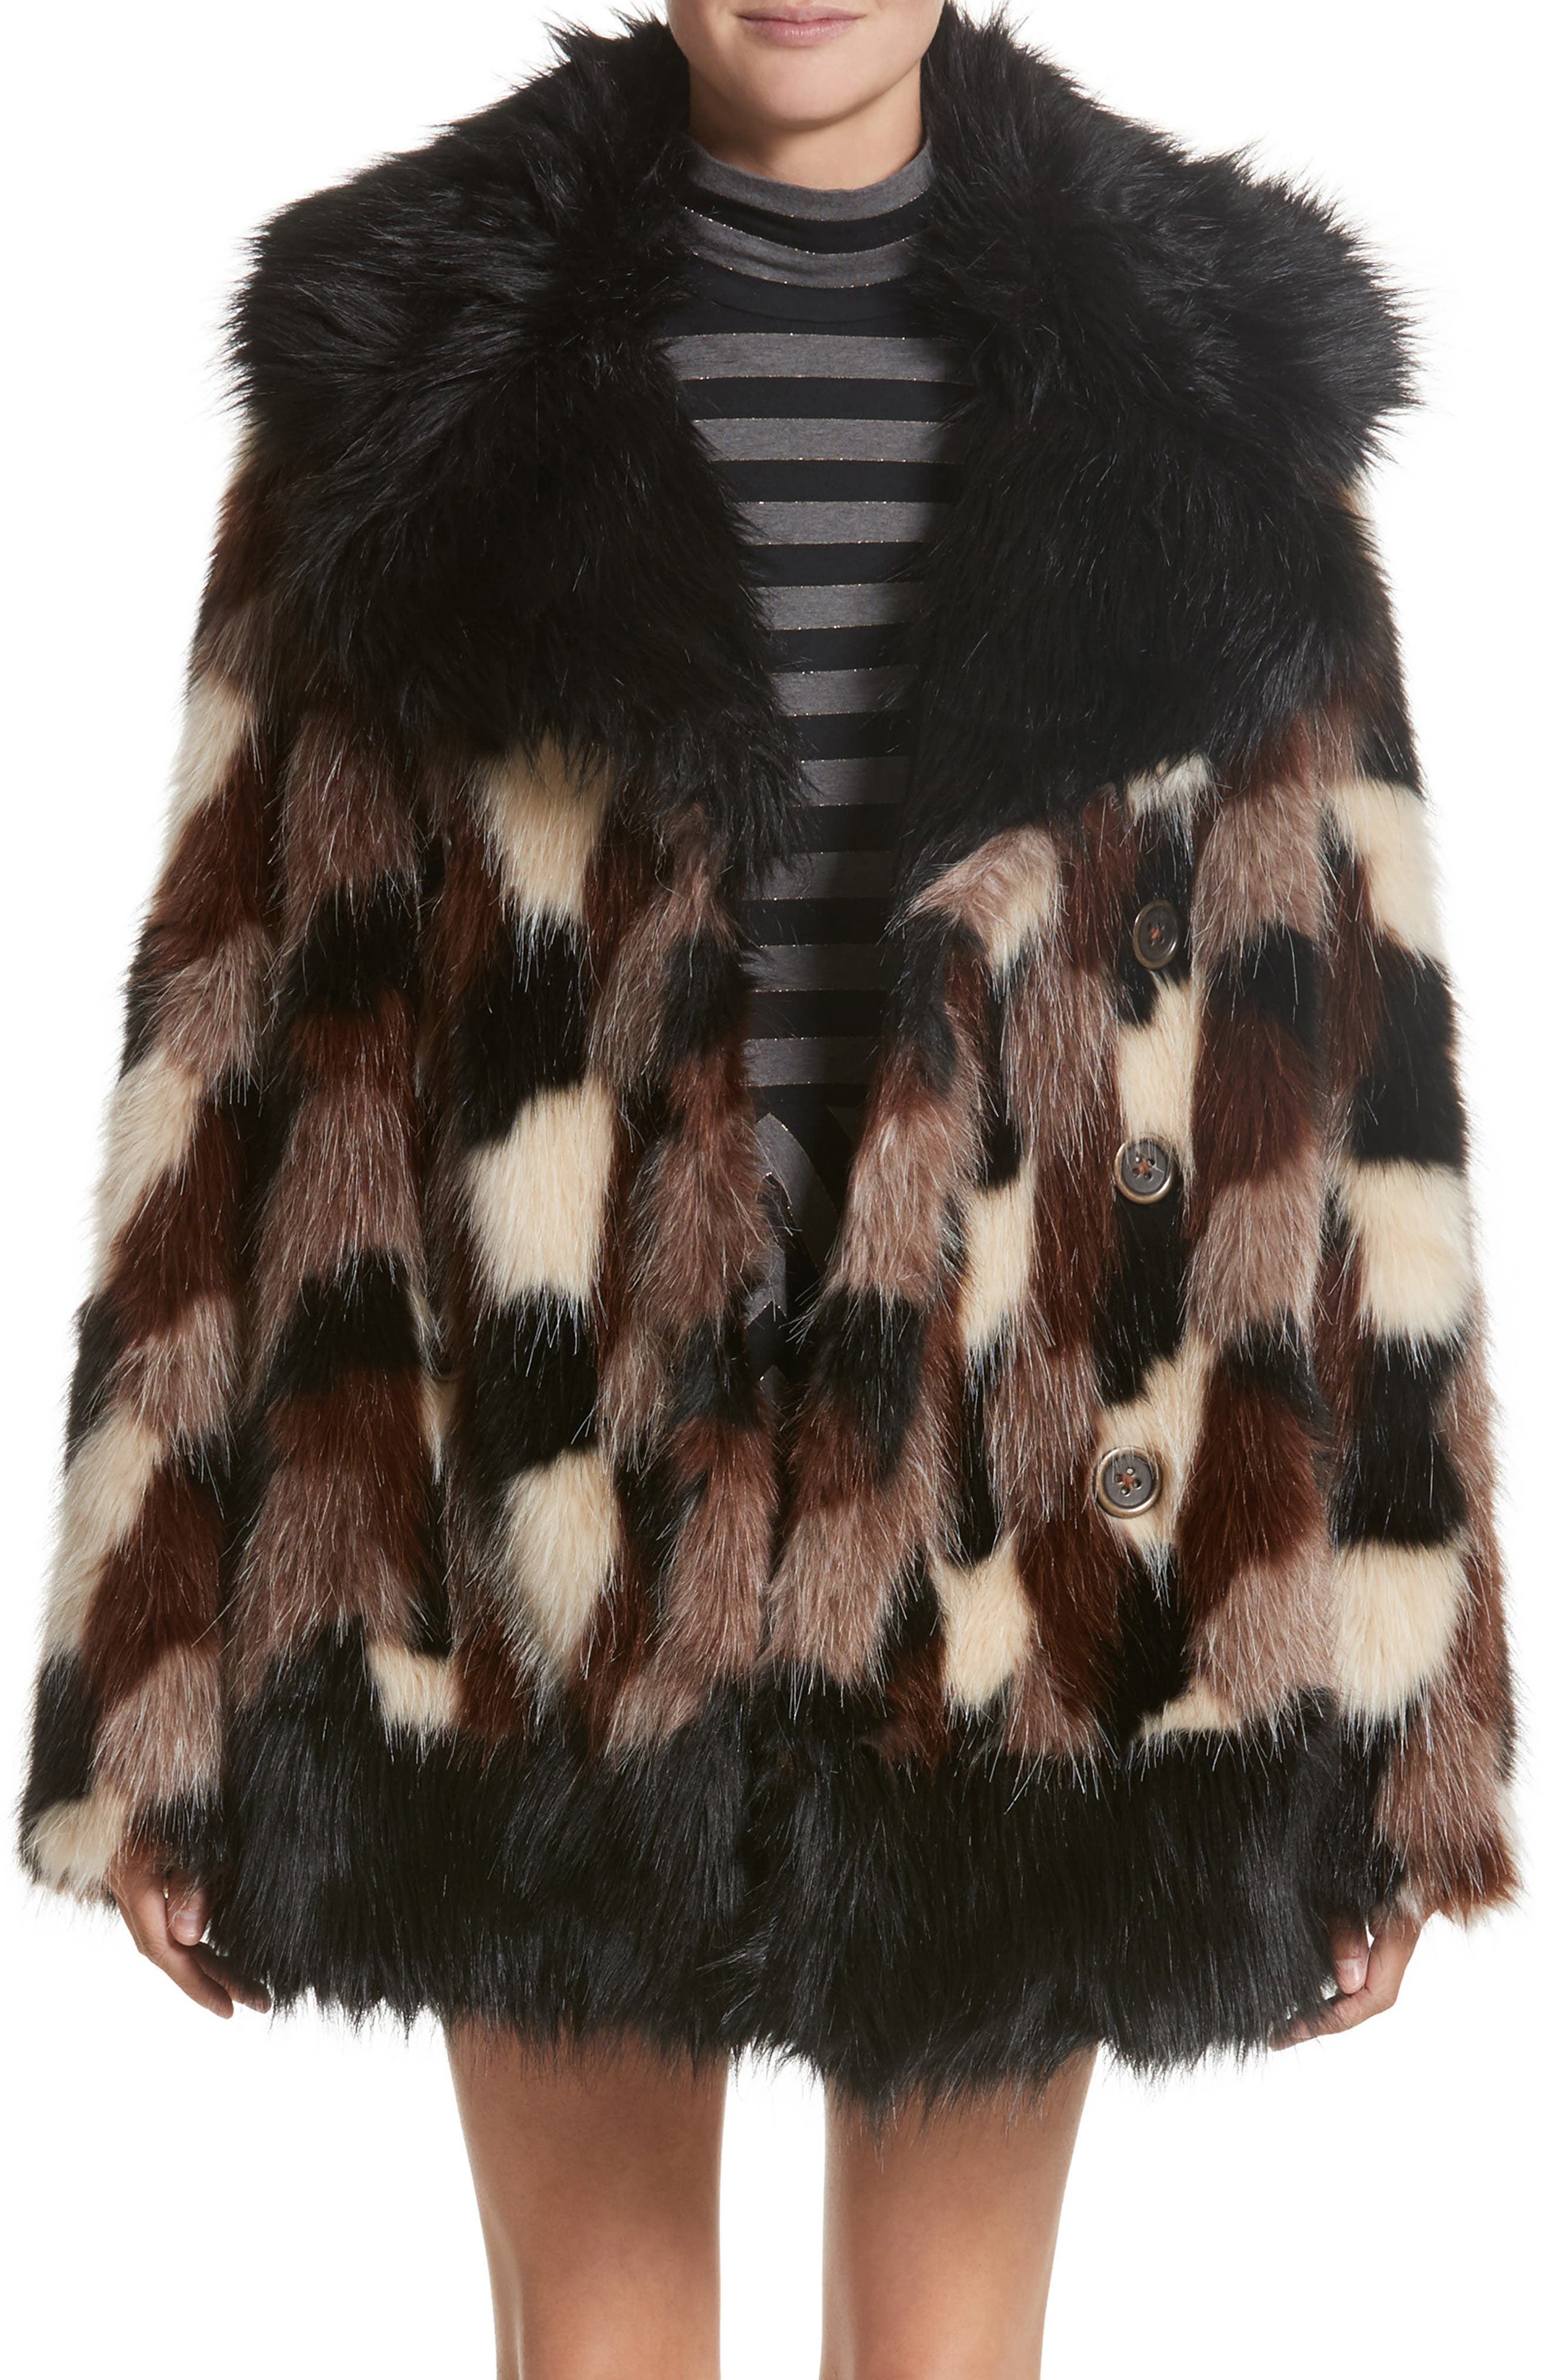 Patchwork Faux Fur Jacket,                             Main thumbnail 1, color,                             Black Multi